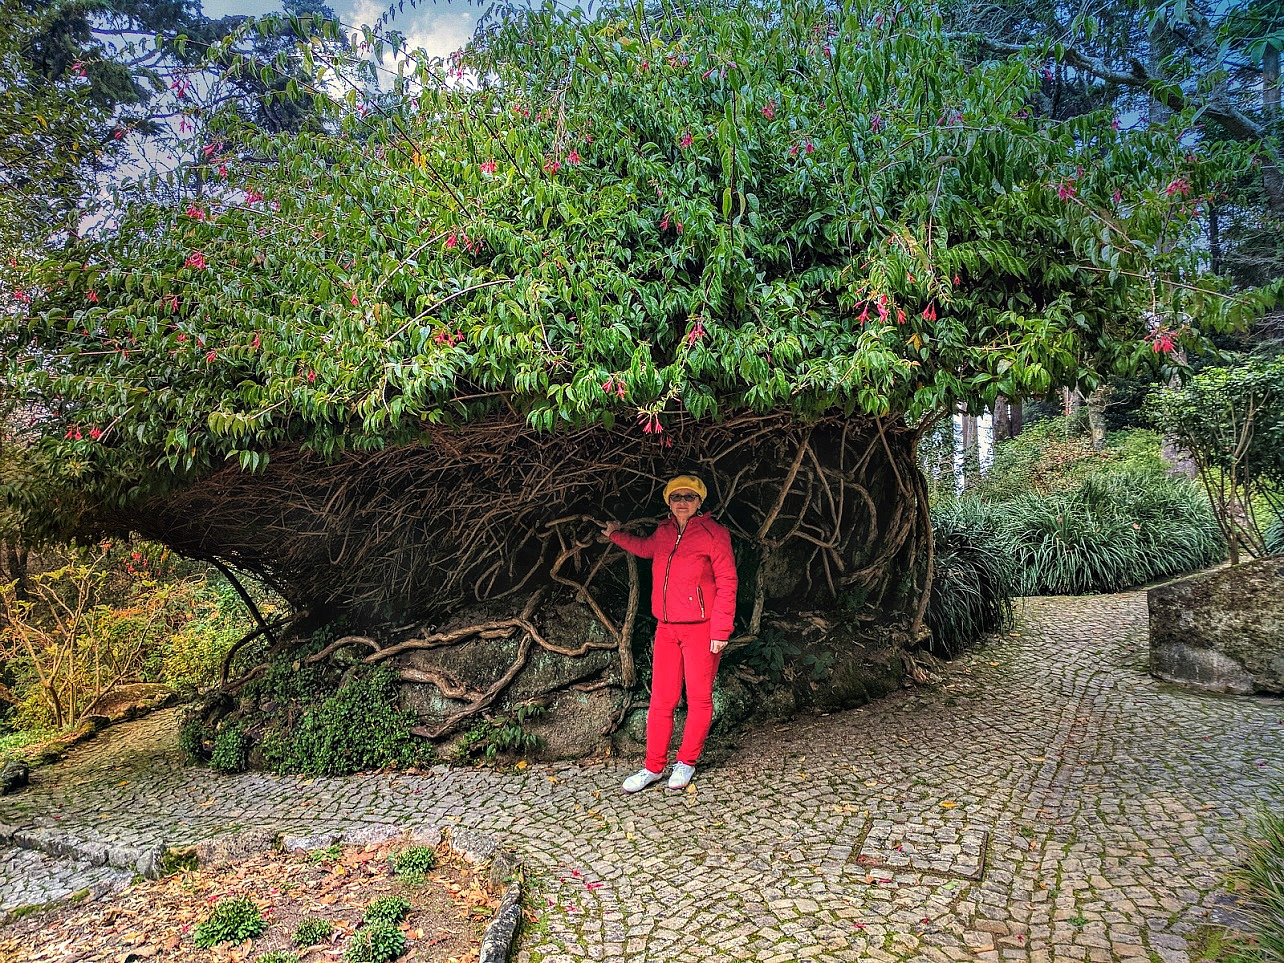 11 Top Reasons to Visit Portugal. Pena Palace gardens in December - still green and blooming.